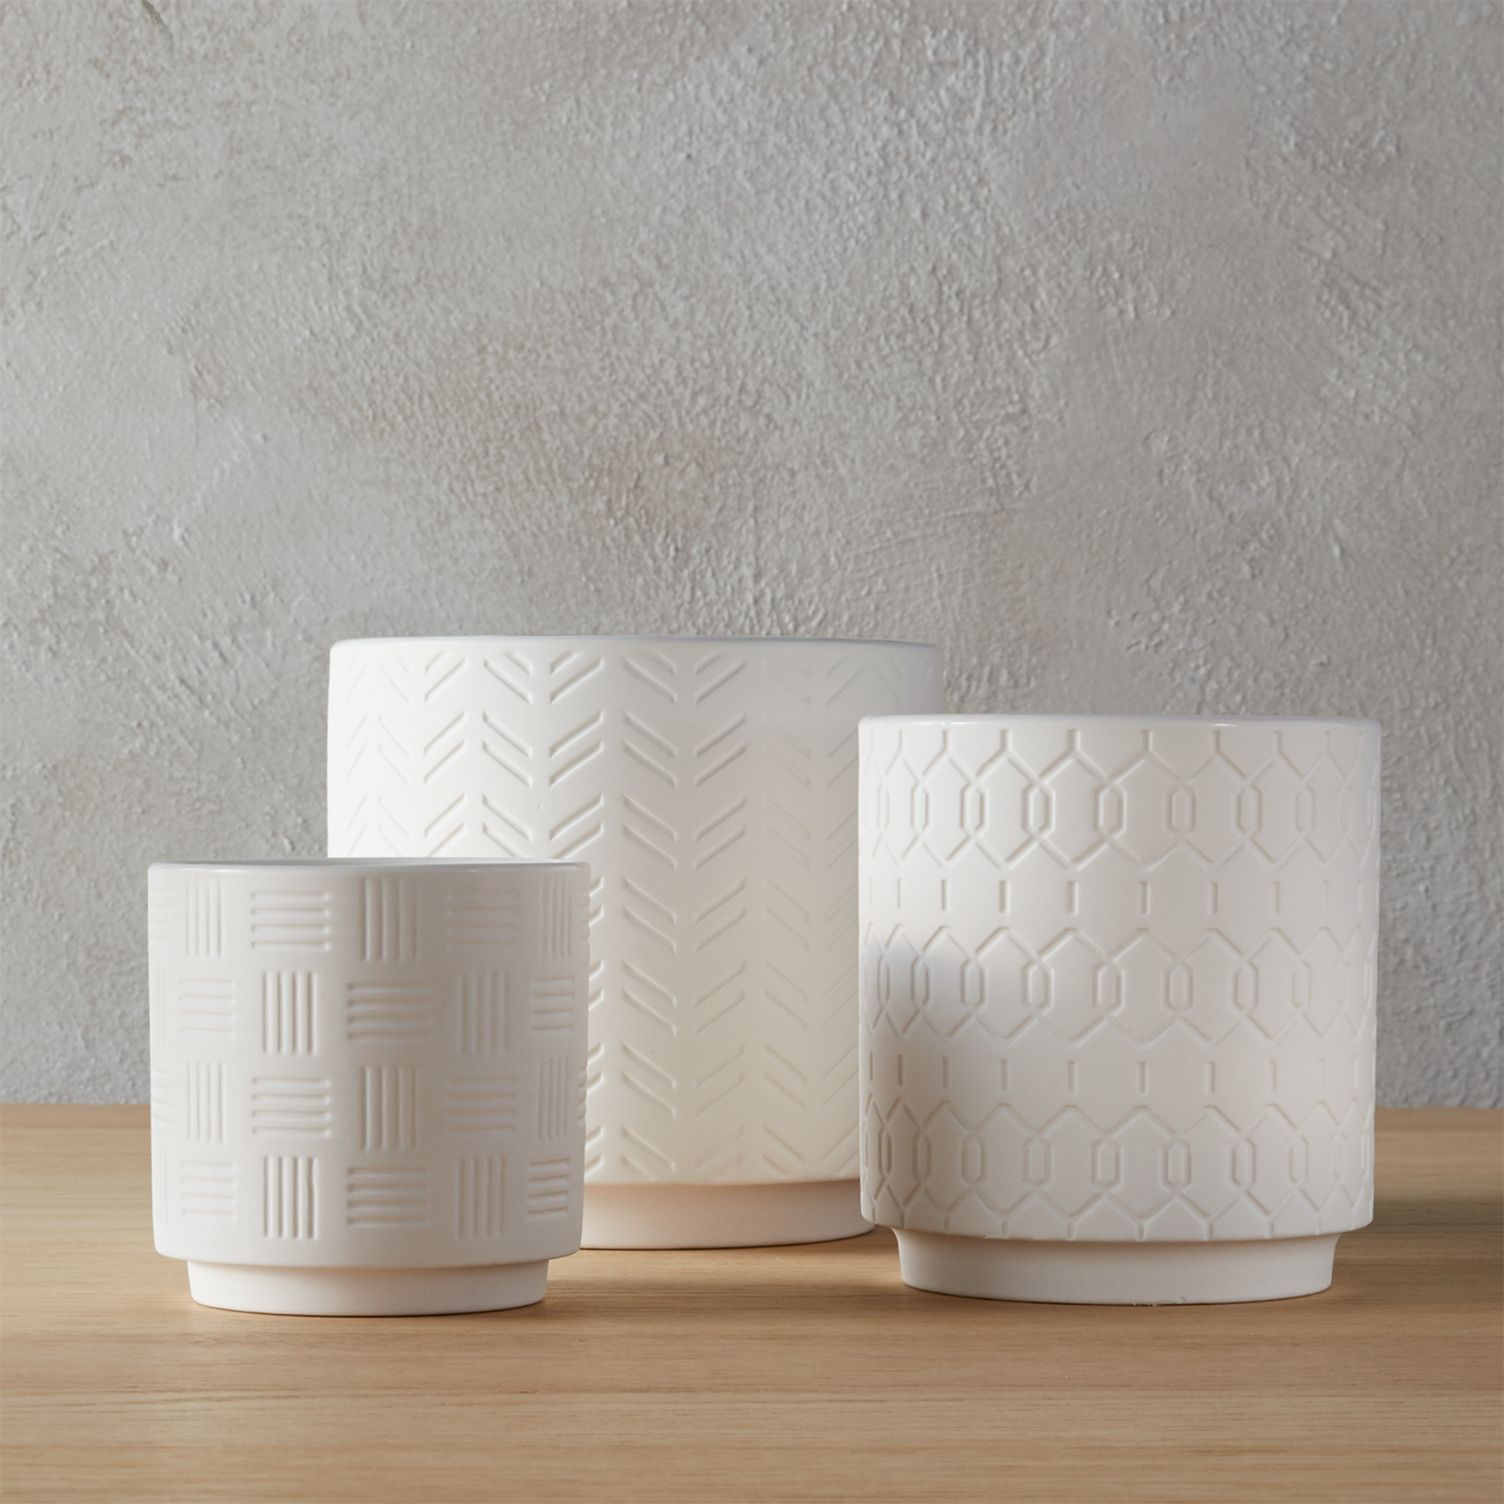 Three-piece planter set from CB2